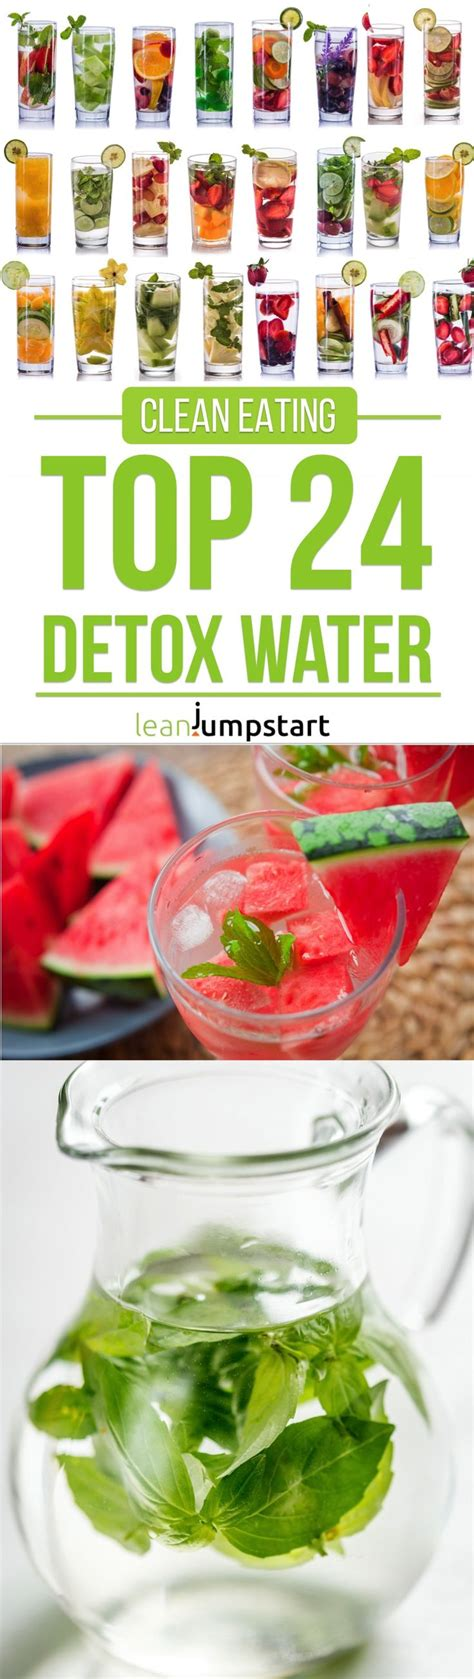 Best 24 Hour Detox For Test by Detox Water Top 24 Clean Recipes To Boost Your Metabolism